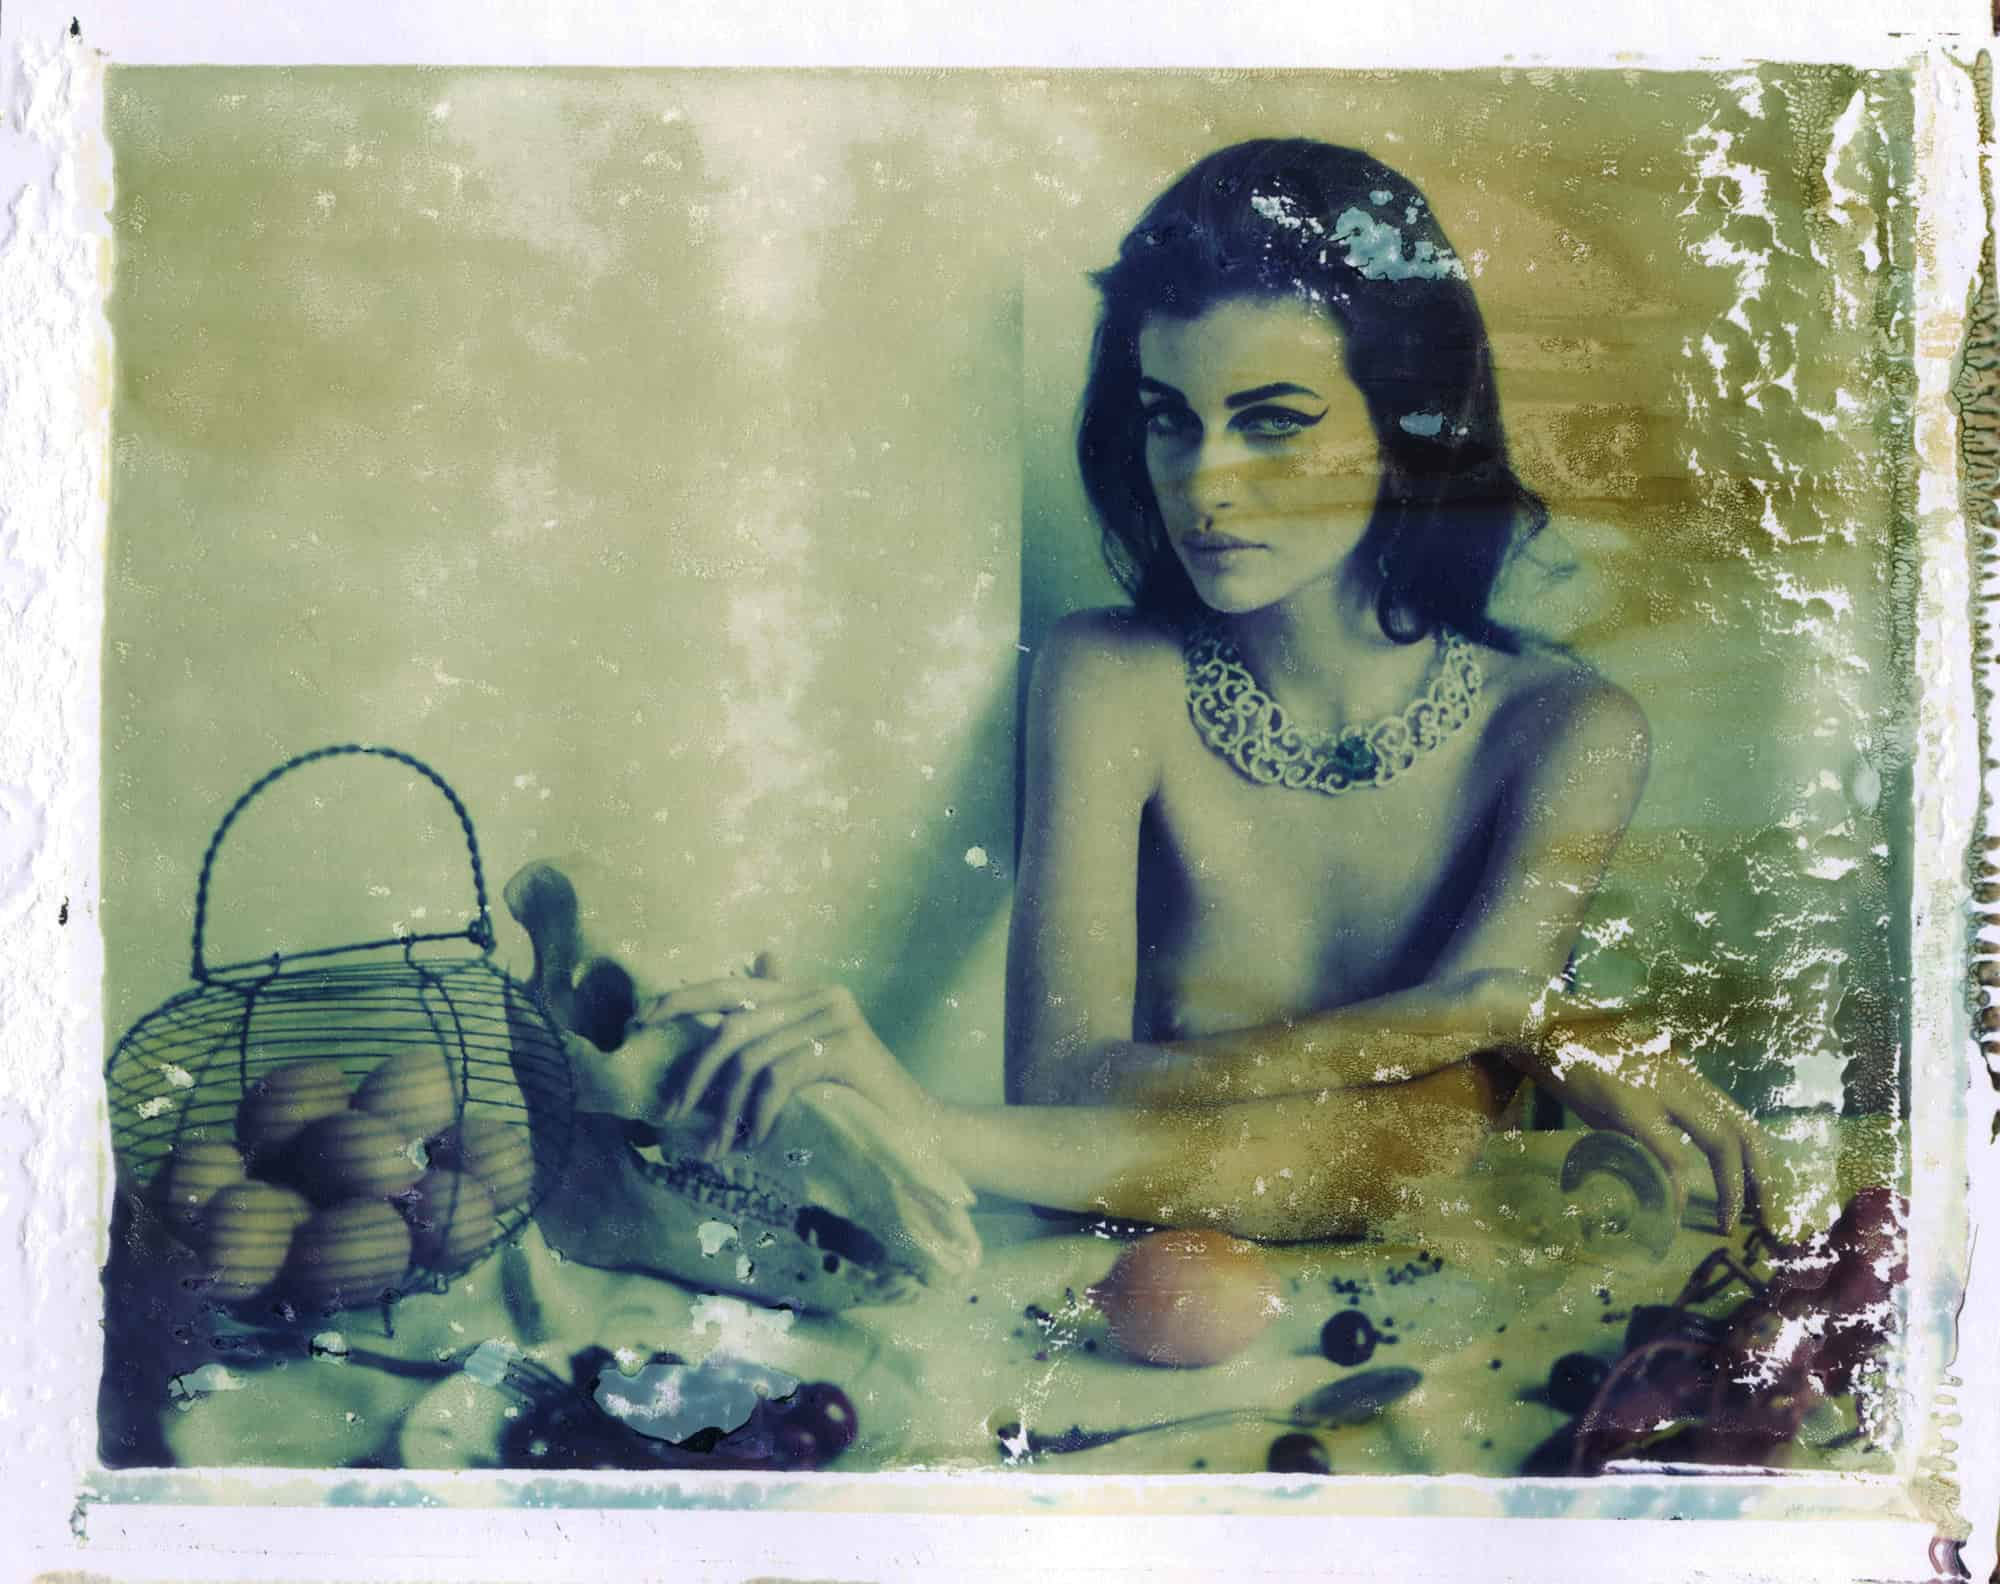 Fine art color photography of semi-nude fashion model wearing Boucheron jewellery, necklace and ring by, sitting on a table with a horse skull, lobster, e.g., influenced by flemish still life paintings.